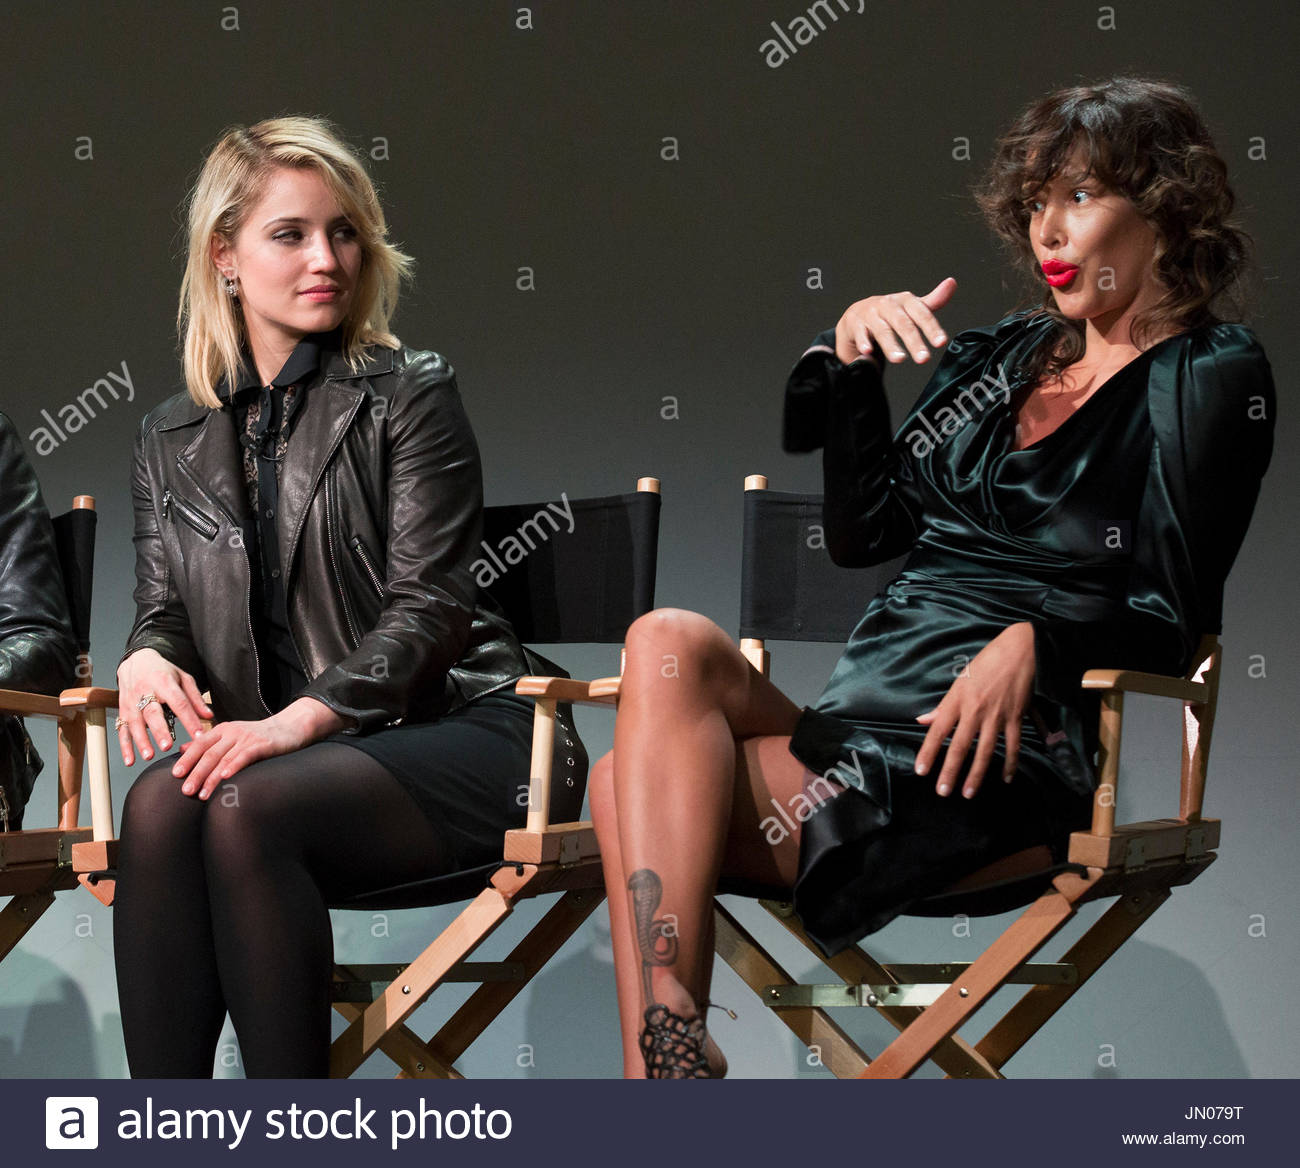 Dianna agron and paz de la huerta bare compilation 10